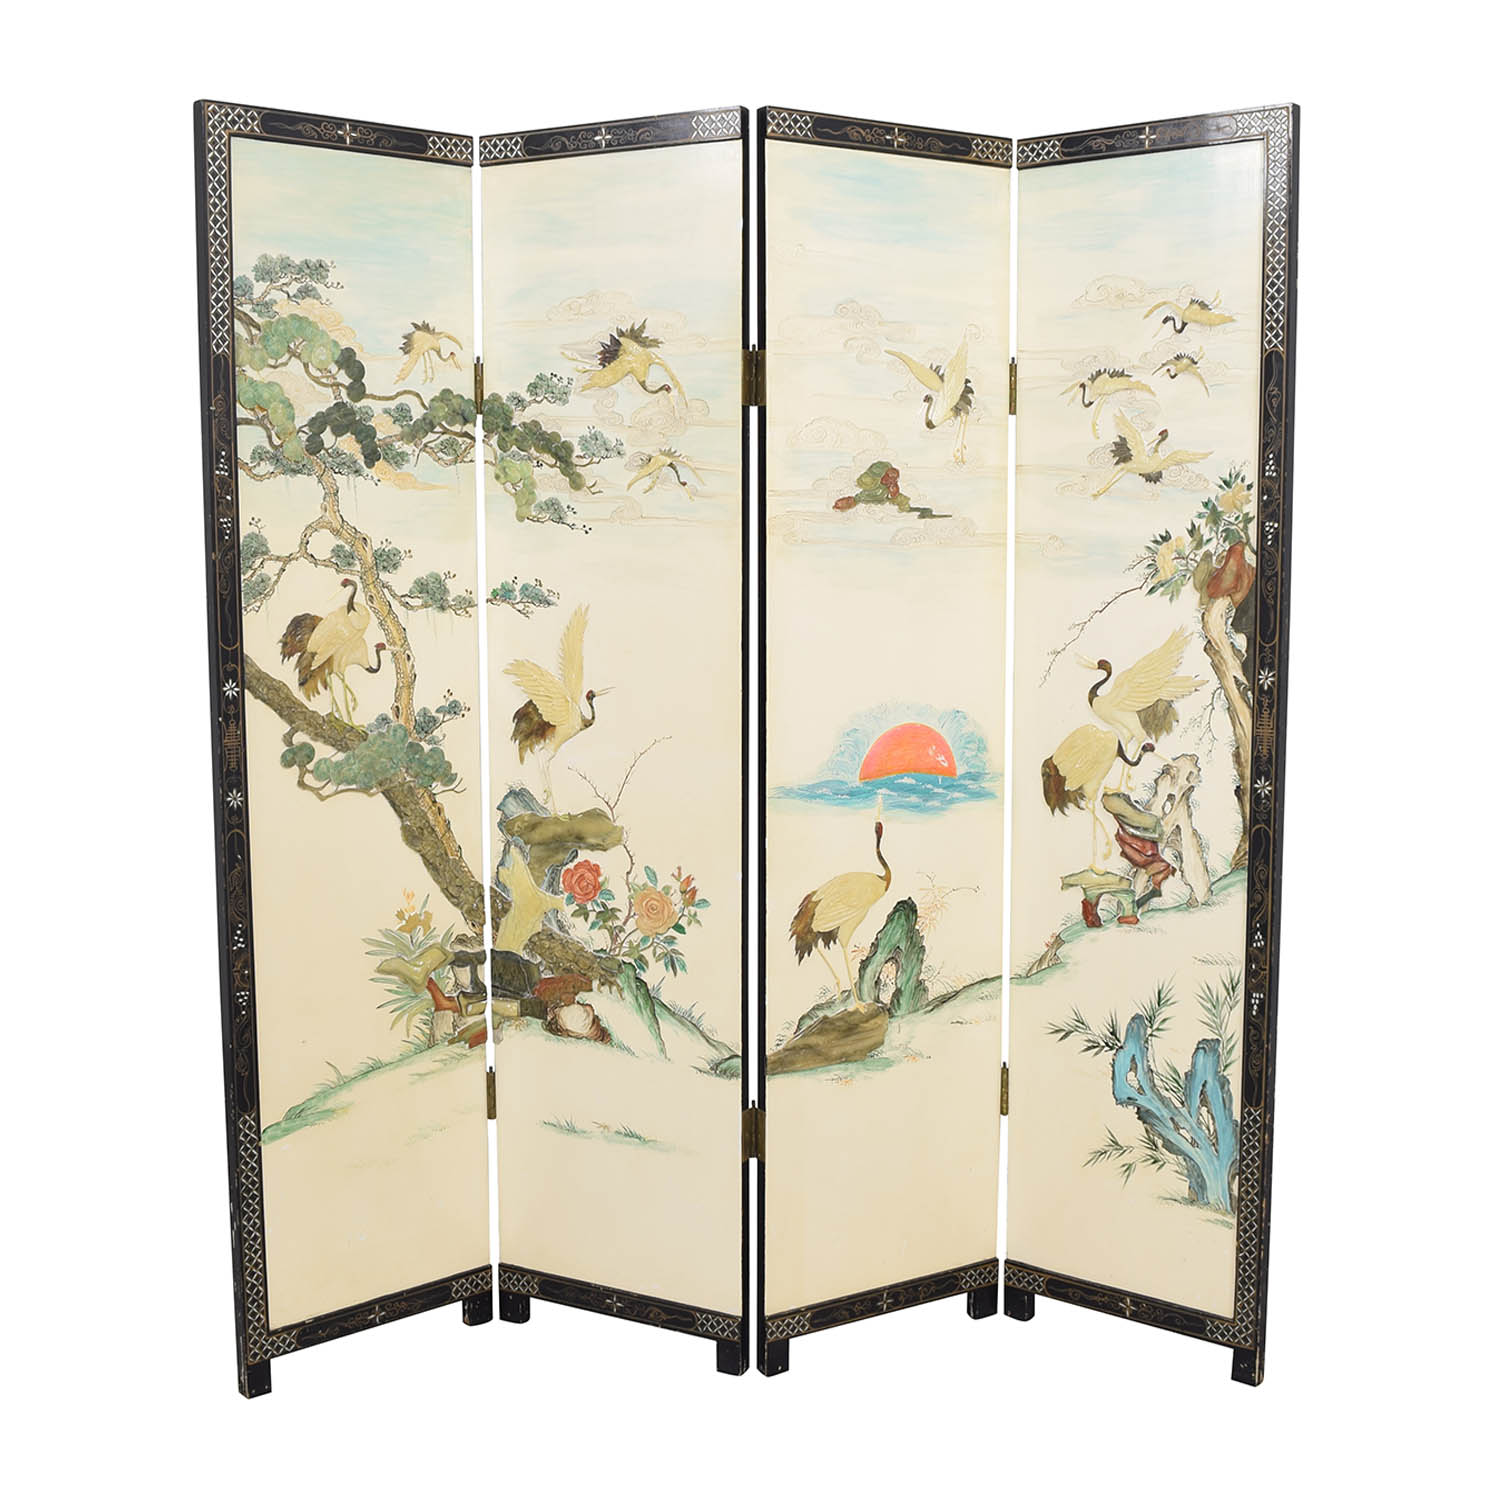 Chinese Style Panel Screen Divider sale